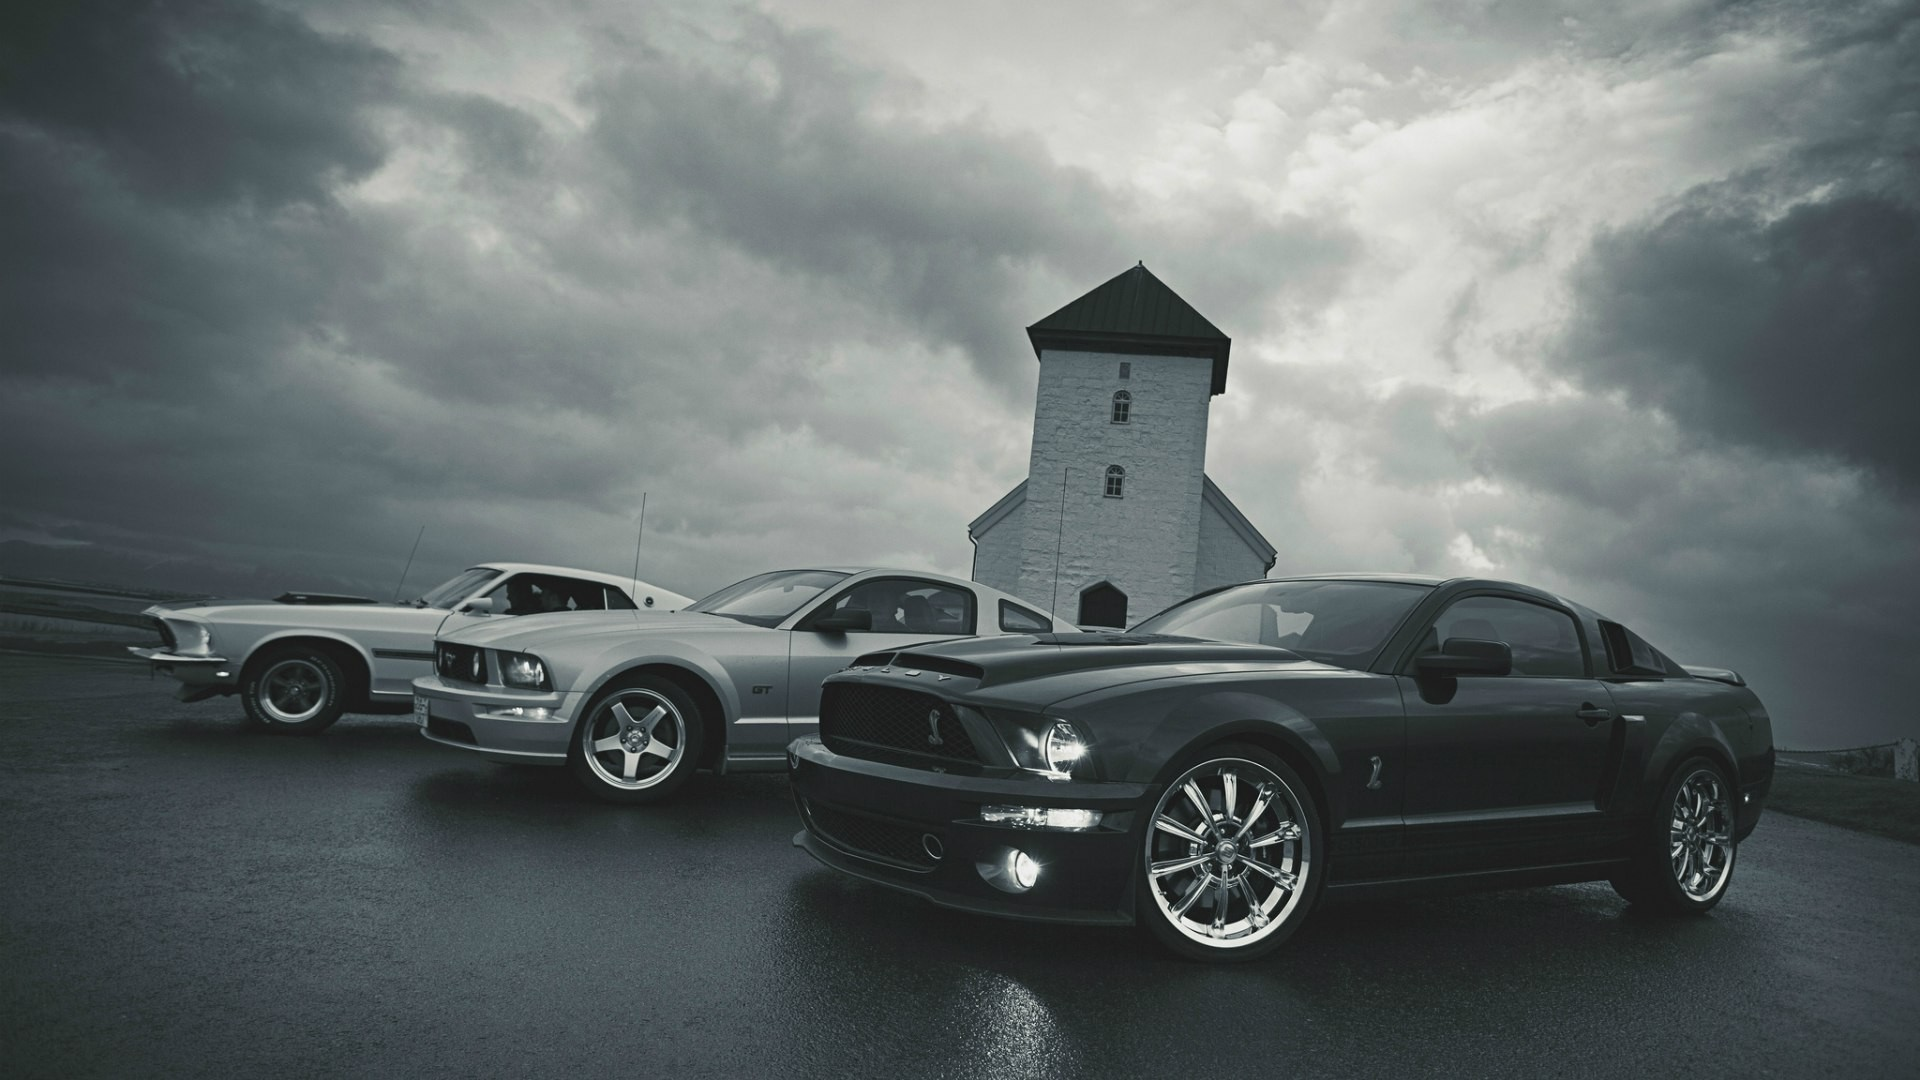 1920x1275 Awesome Ford Mustang Logo Wallpaper With